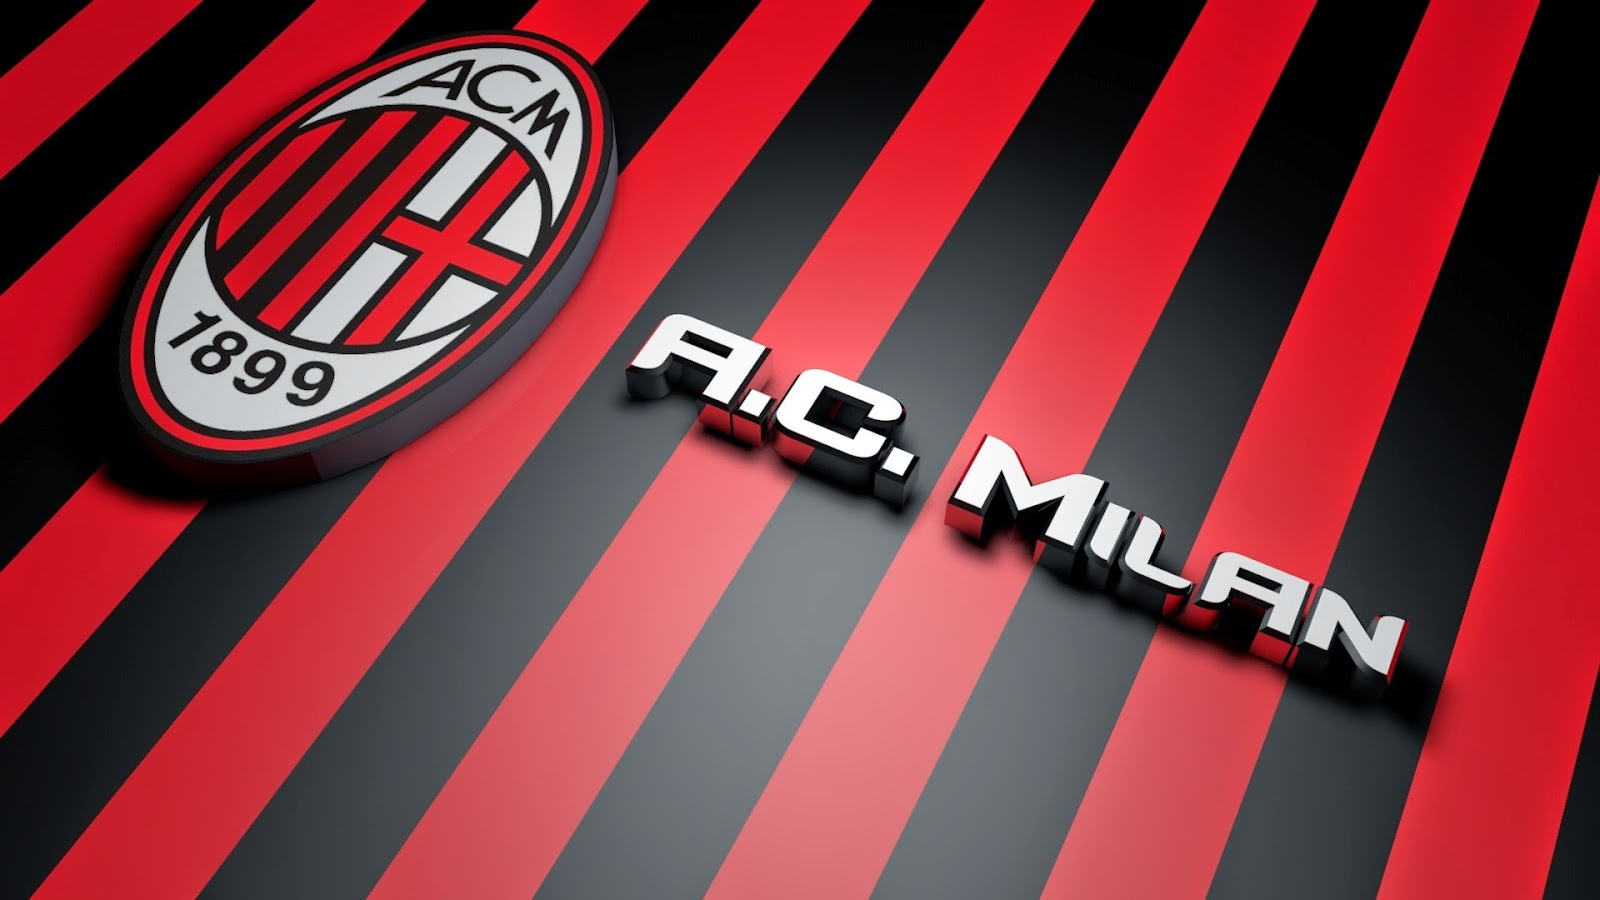 AC Milan Symbol Wallpaper